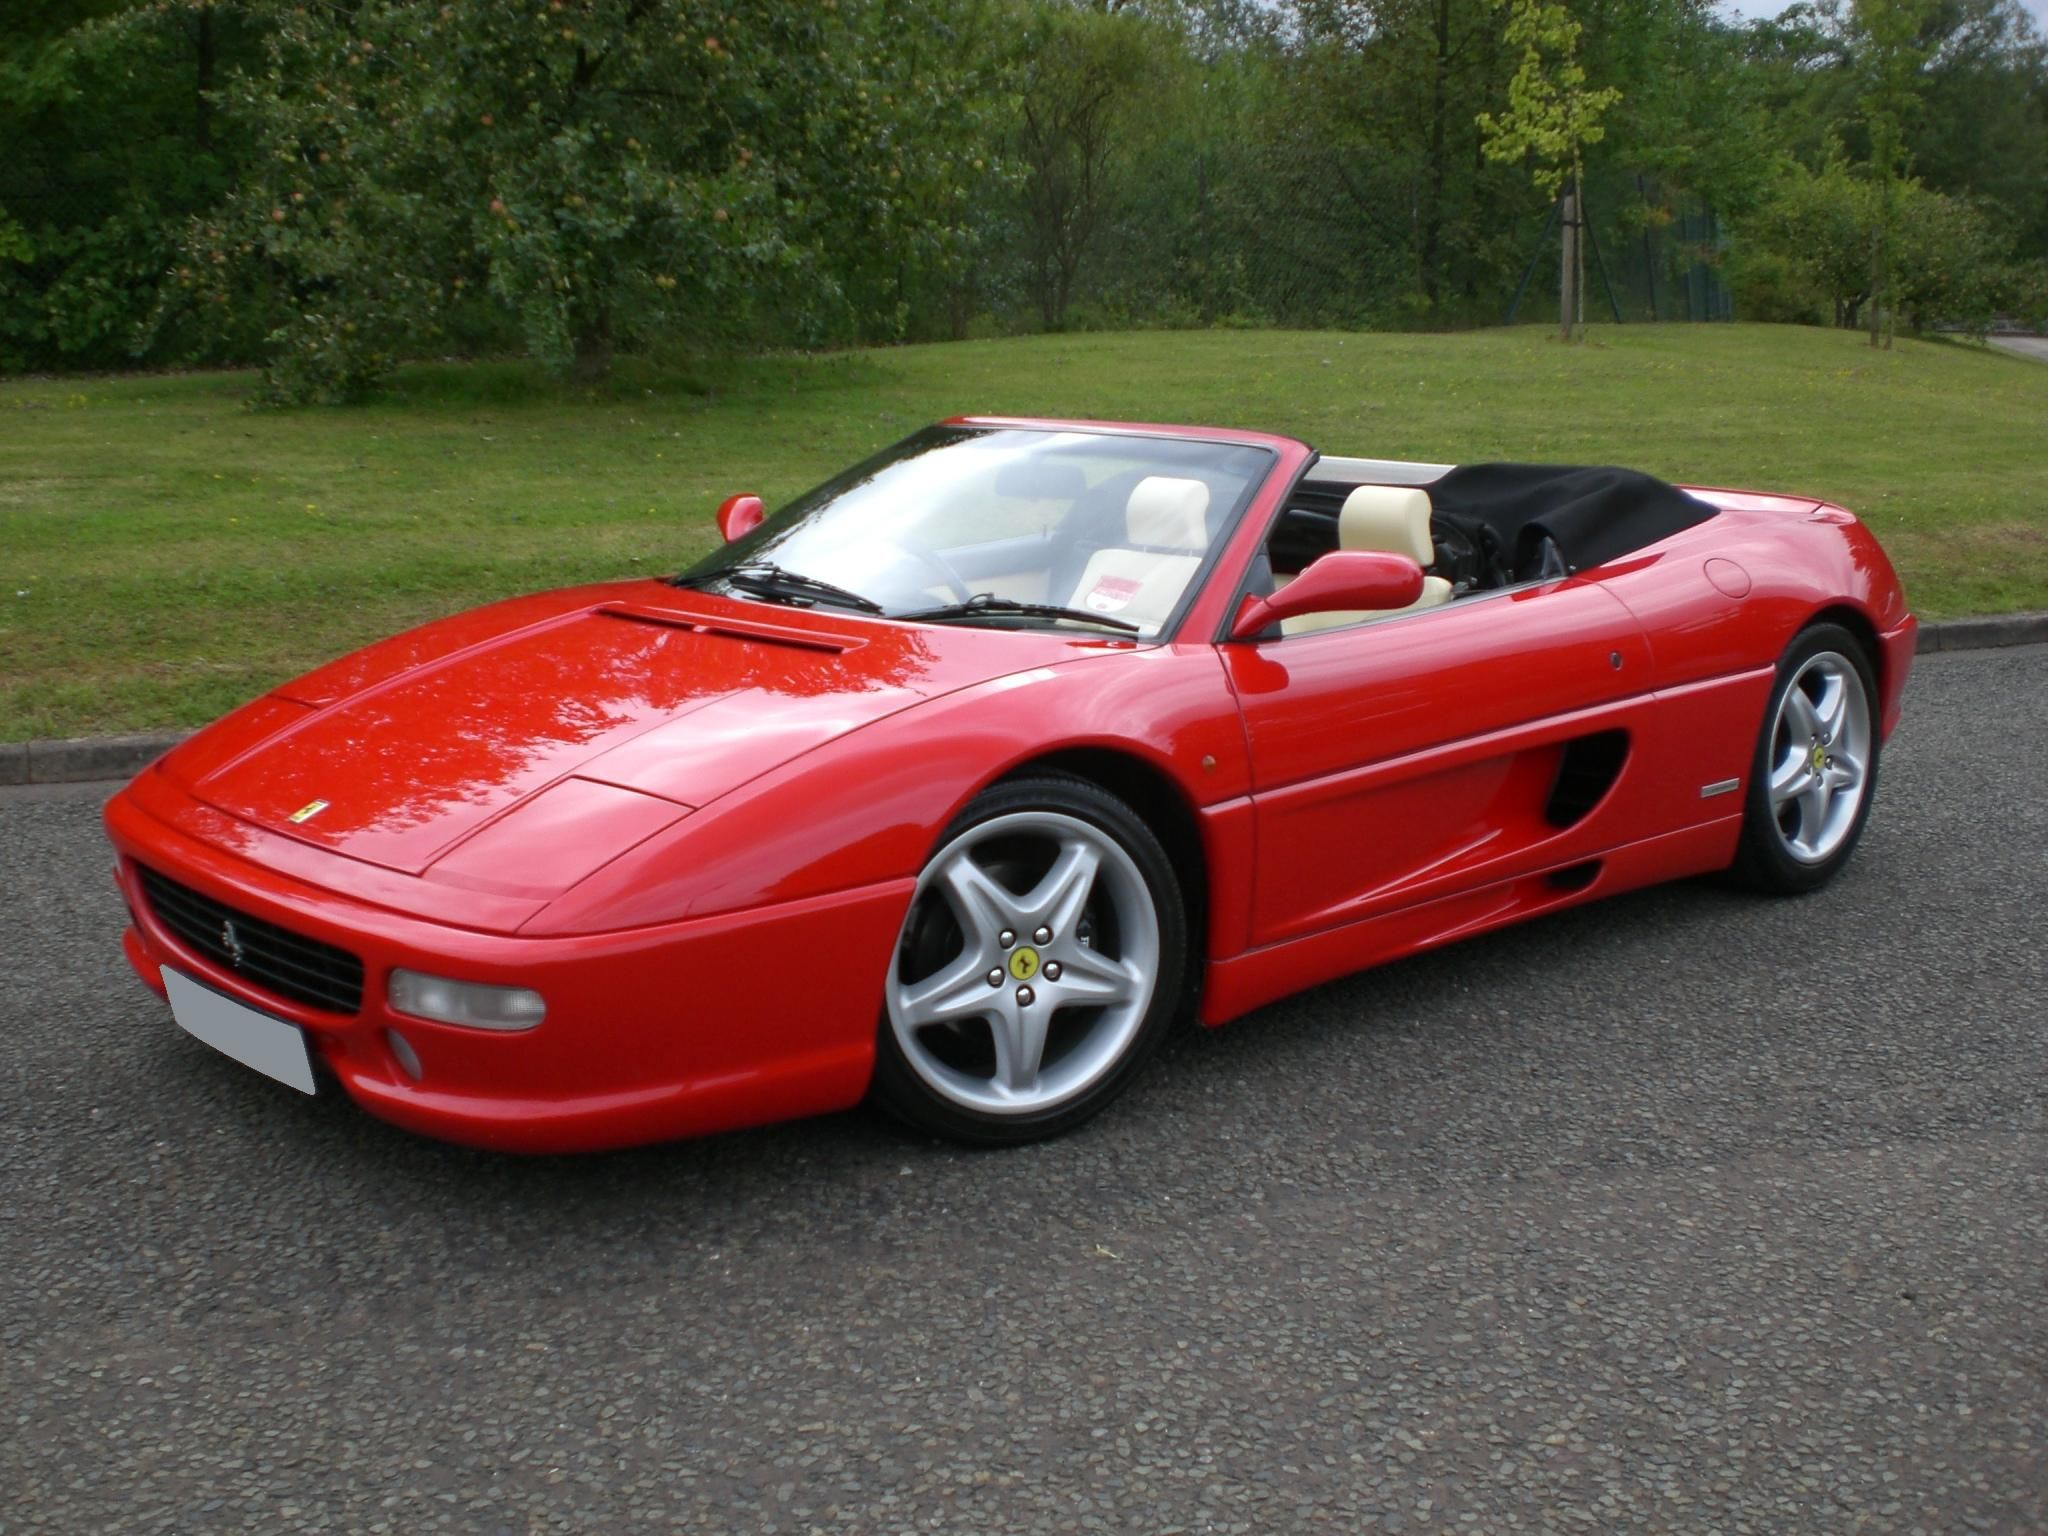 Ferrari 355 Spider The First Supercar I Got To Have A Ride In Super Cars Ferrari Car Ferrari